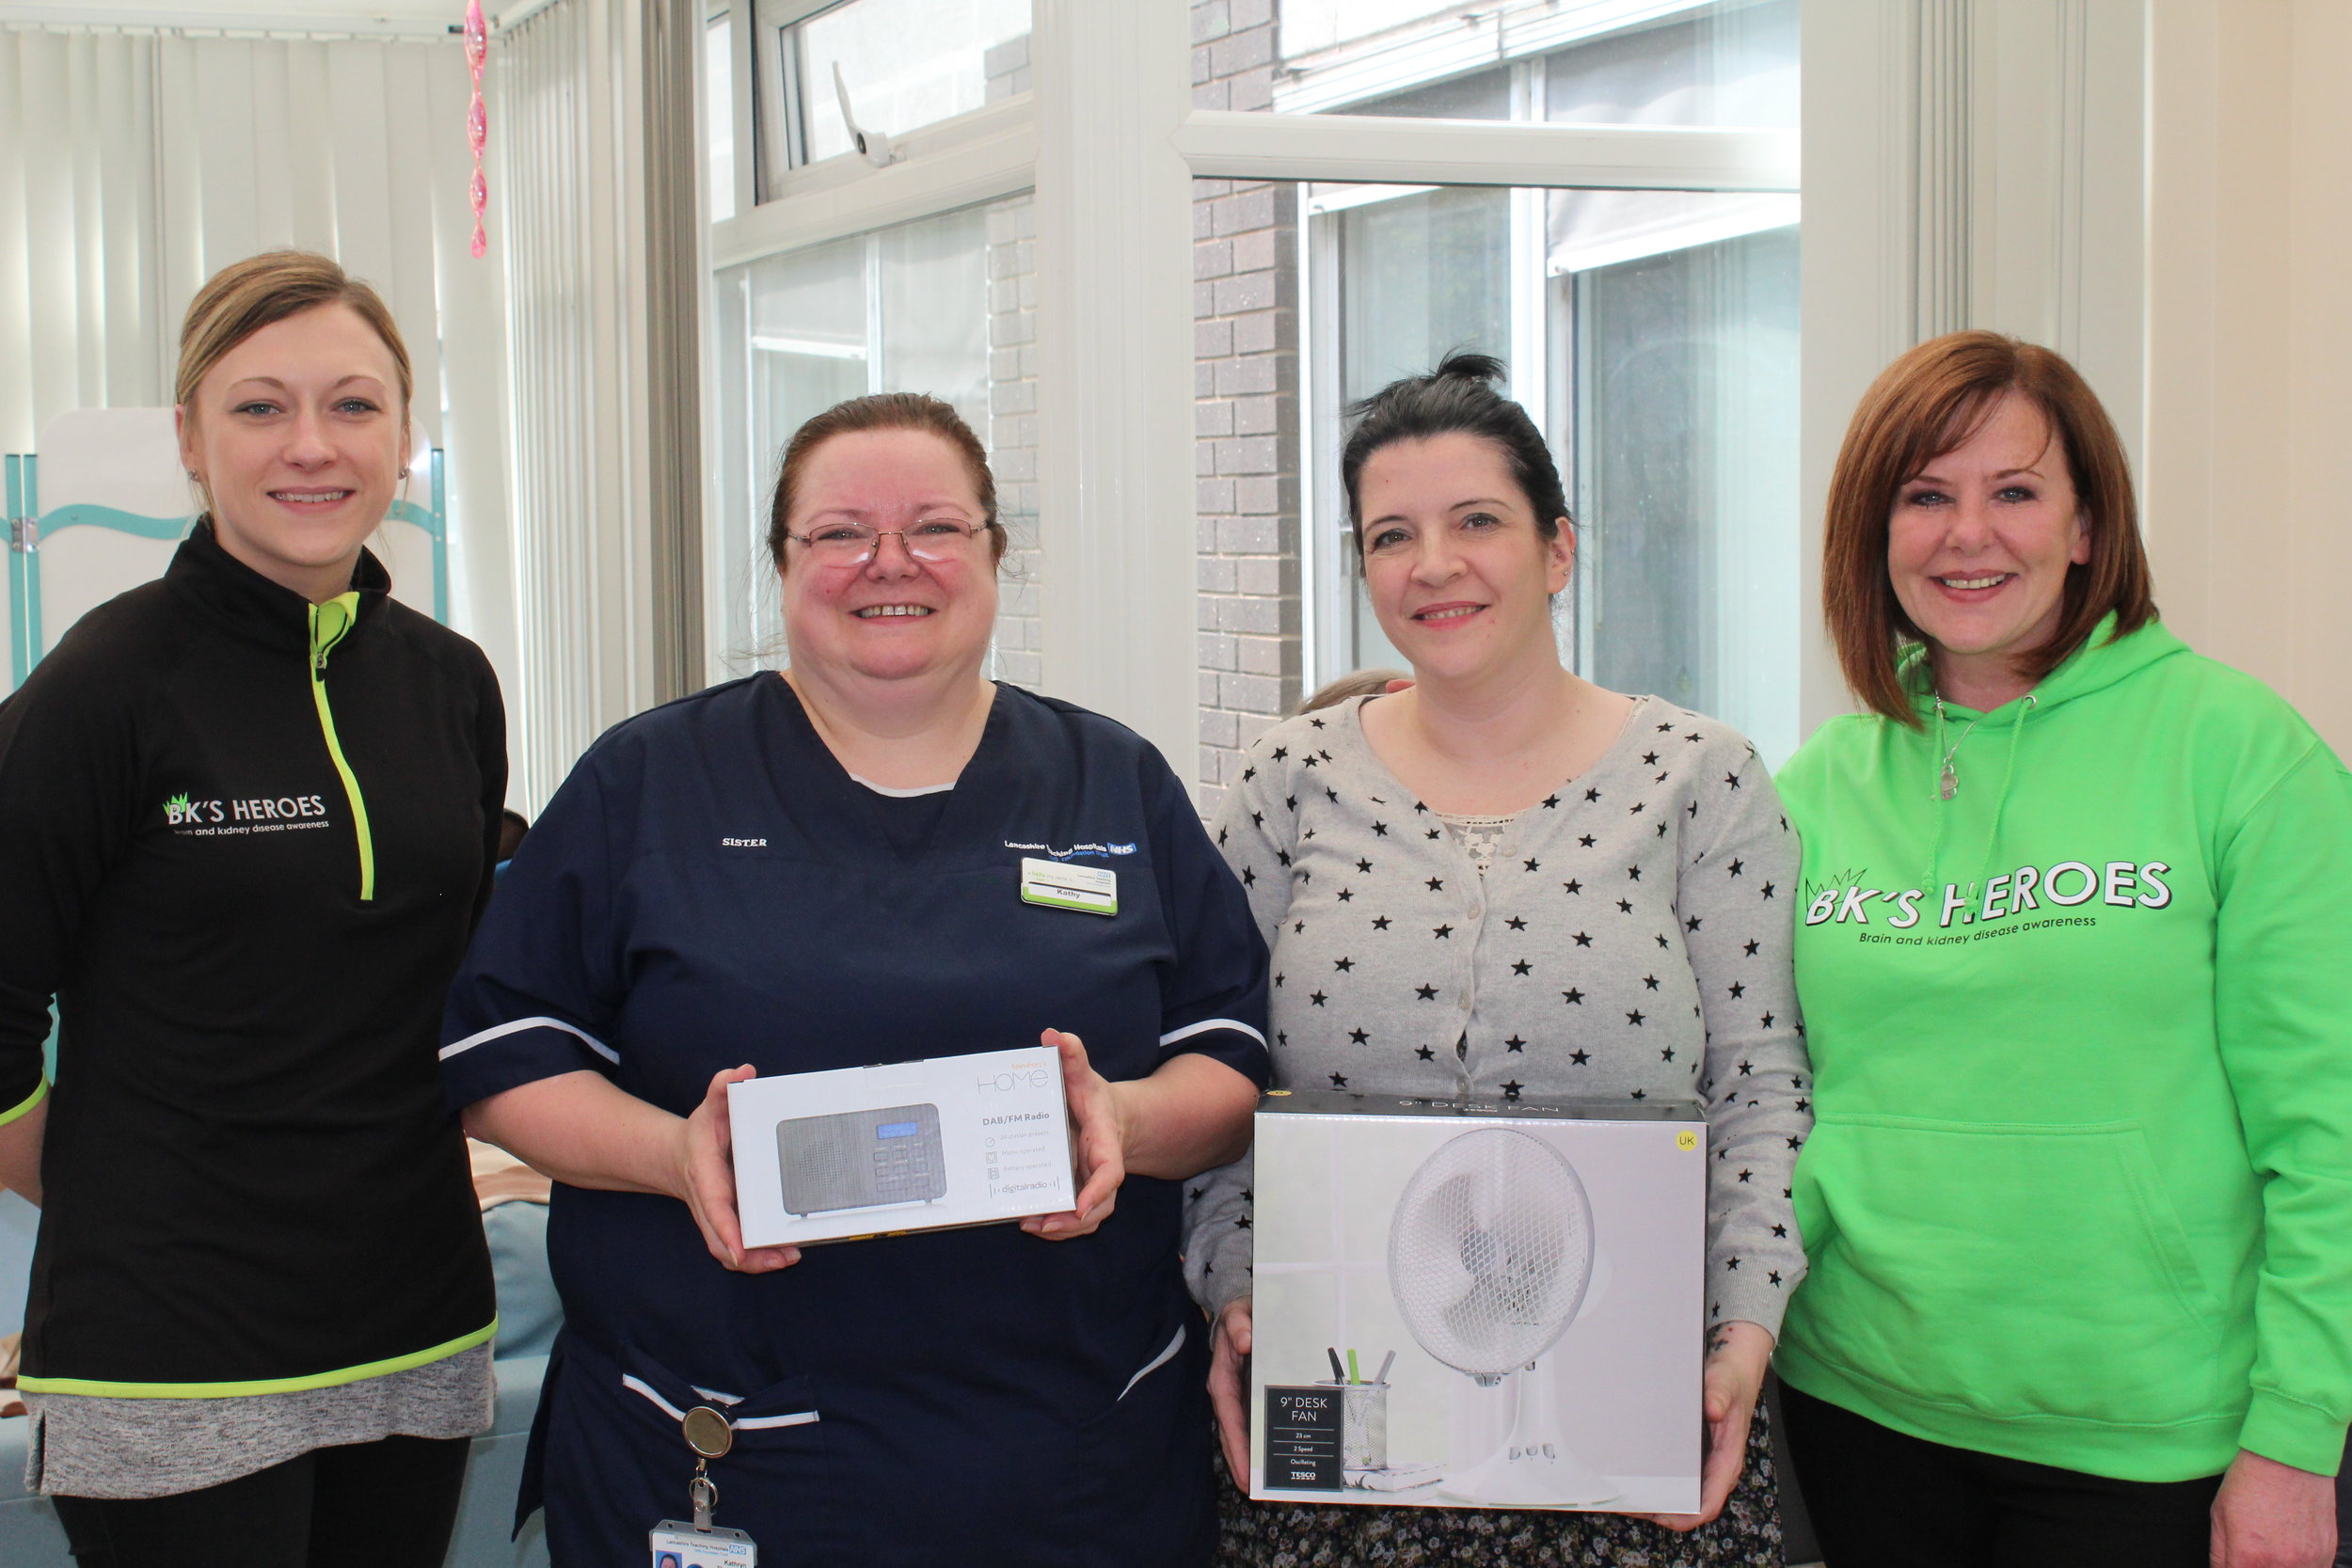 bk's heroes trustees fiona and dan handing over the fans and radios to the neuro ward sisters lisa and kathy